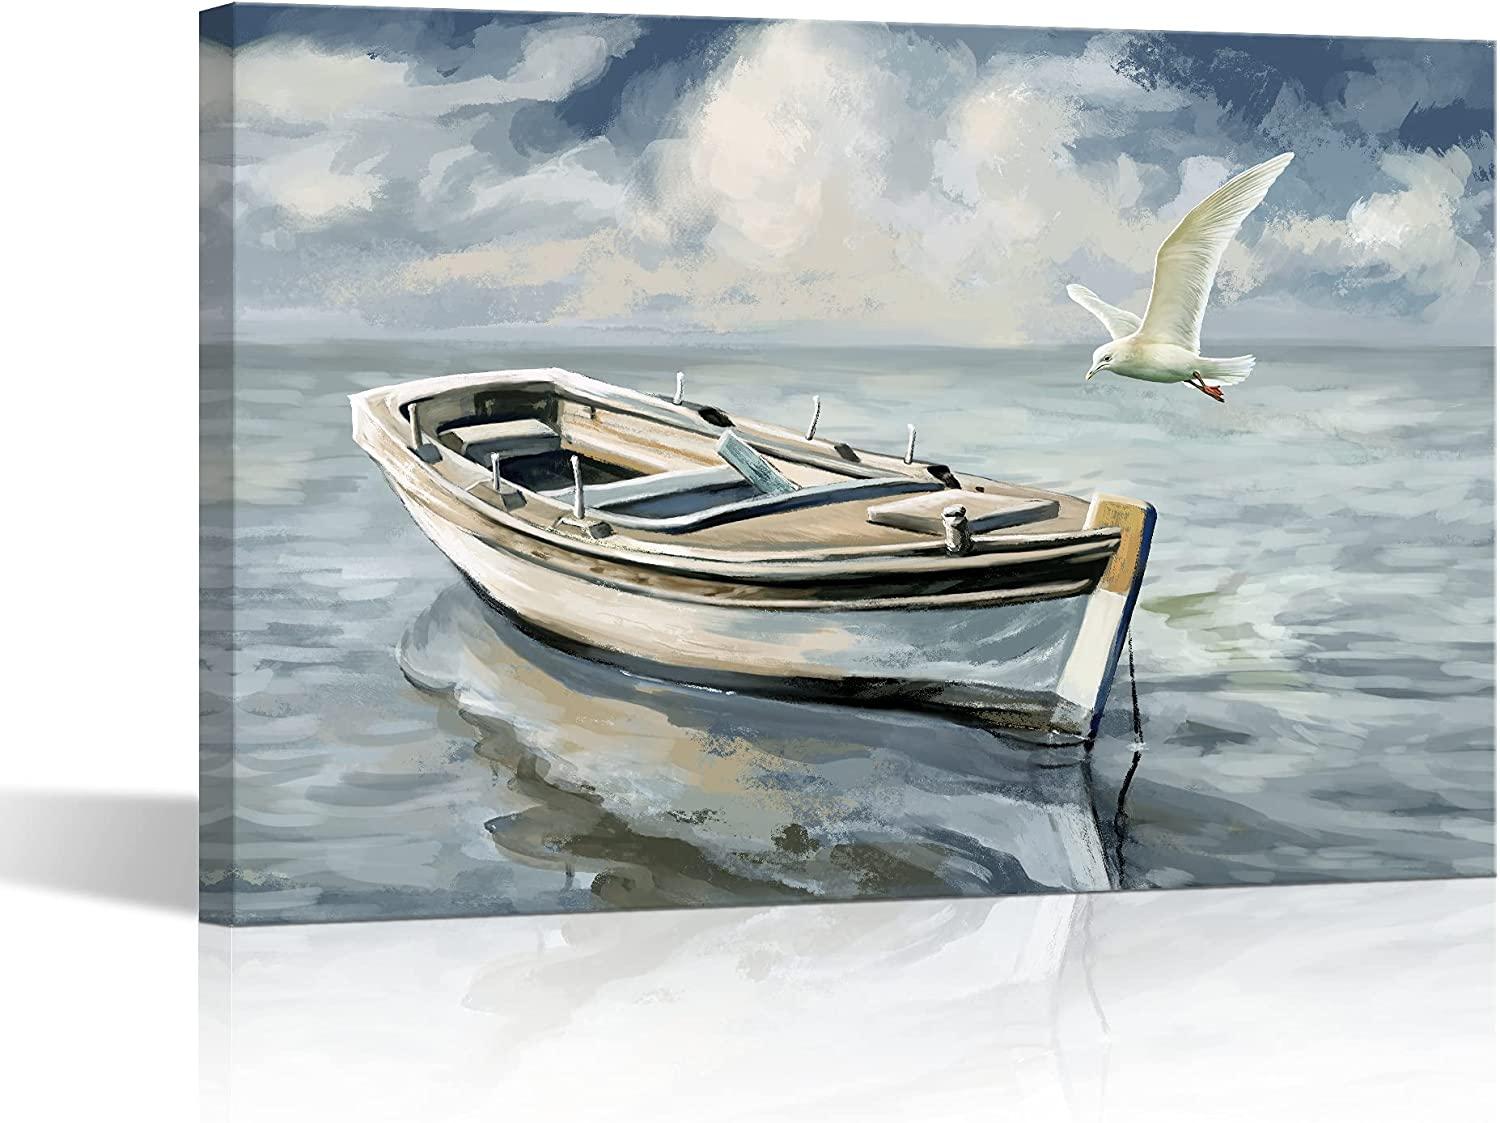 Beitly Ocean Canvas Wall Art Boat Seagull Print Coastal Gray Blue Bathroom Living Room Bedroom Painting Decoration Home Decor Ship Seabird Sky Ready to Hang 16x24 Inches Framed Large